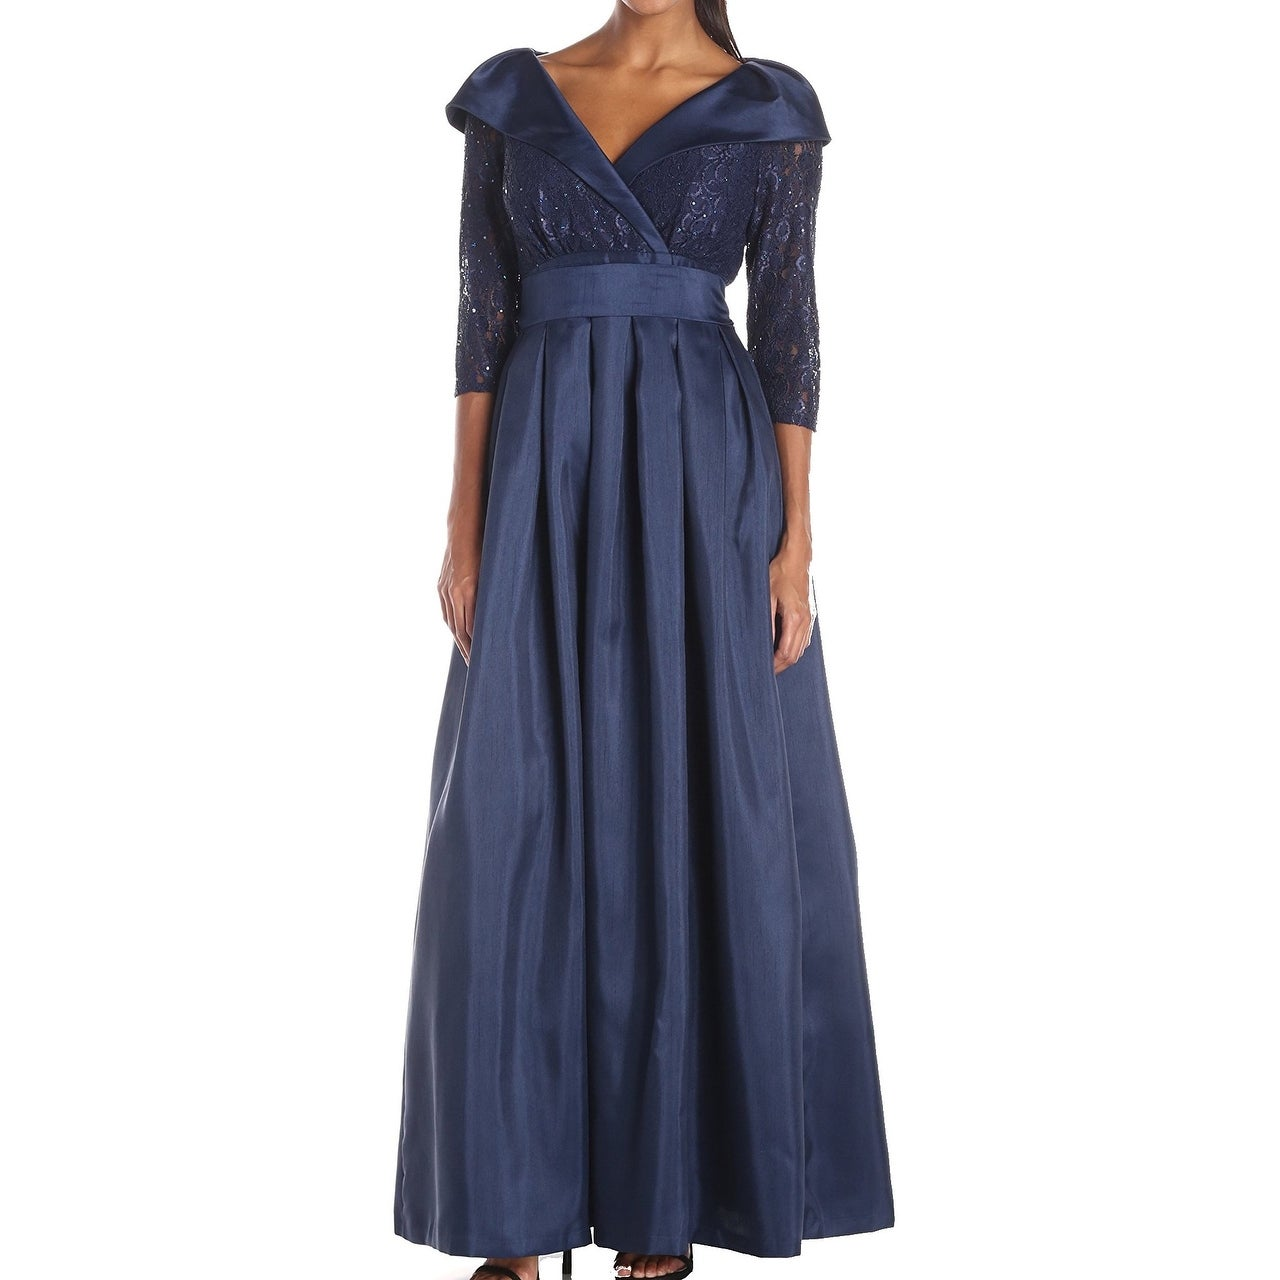 Shop Jessica Howard NEW Blue Women\'s Size 16 Lace Sequin Ball Gown ...